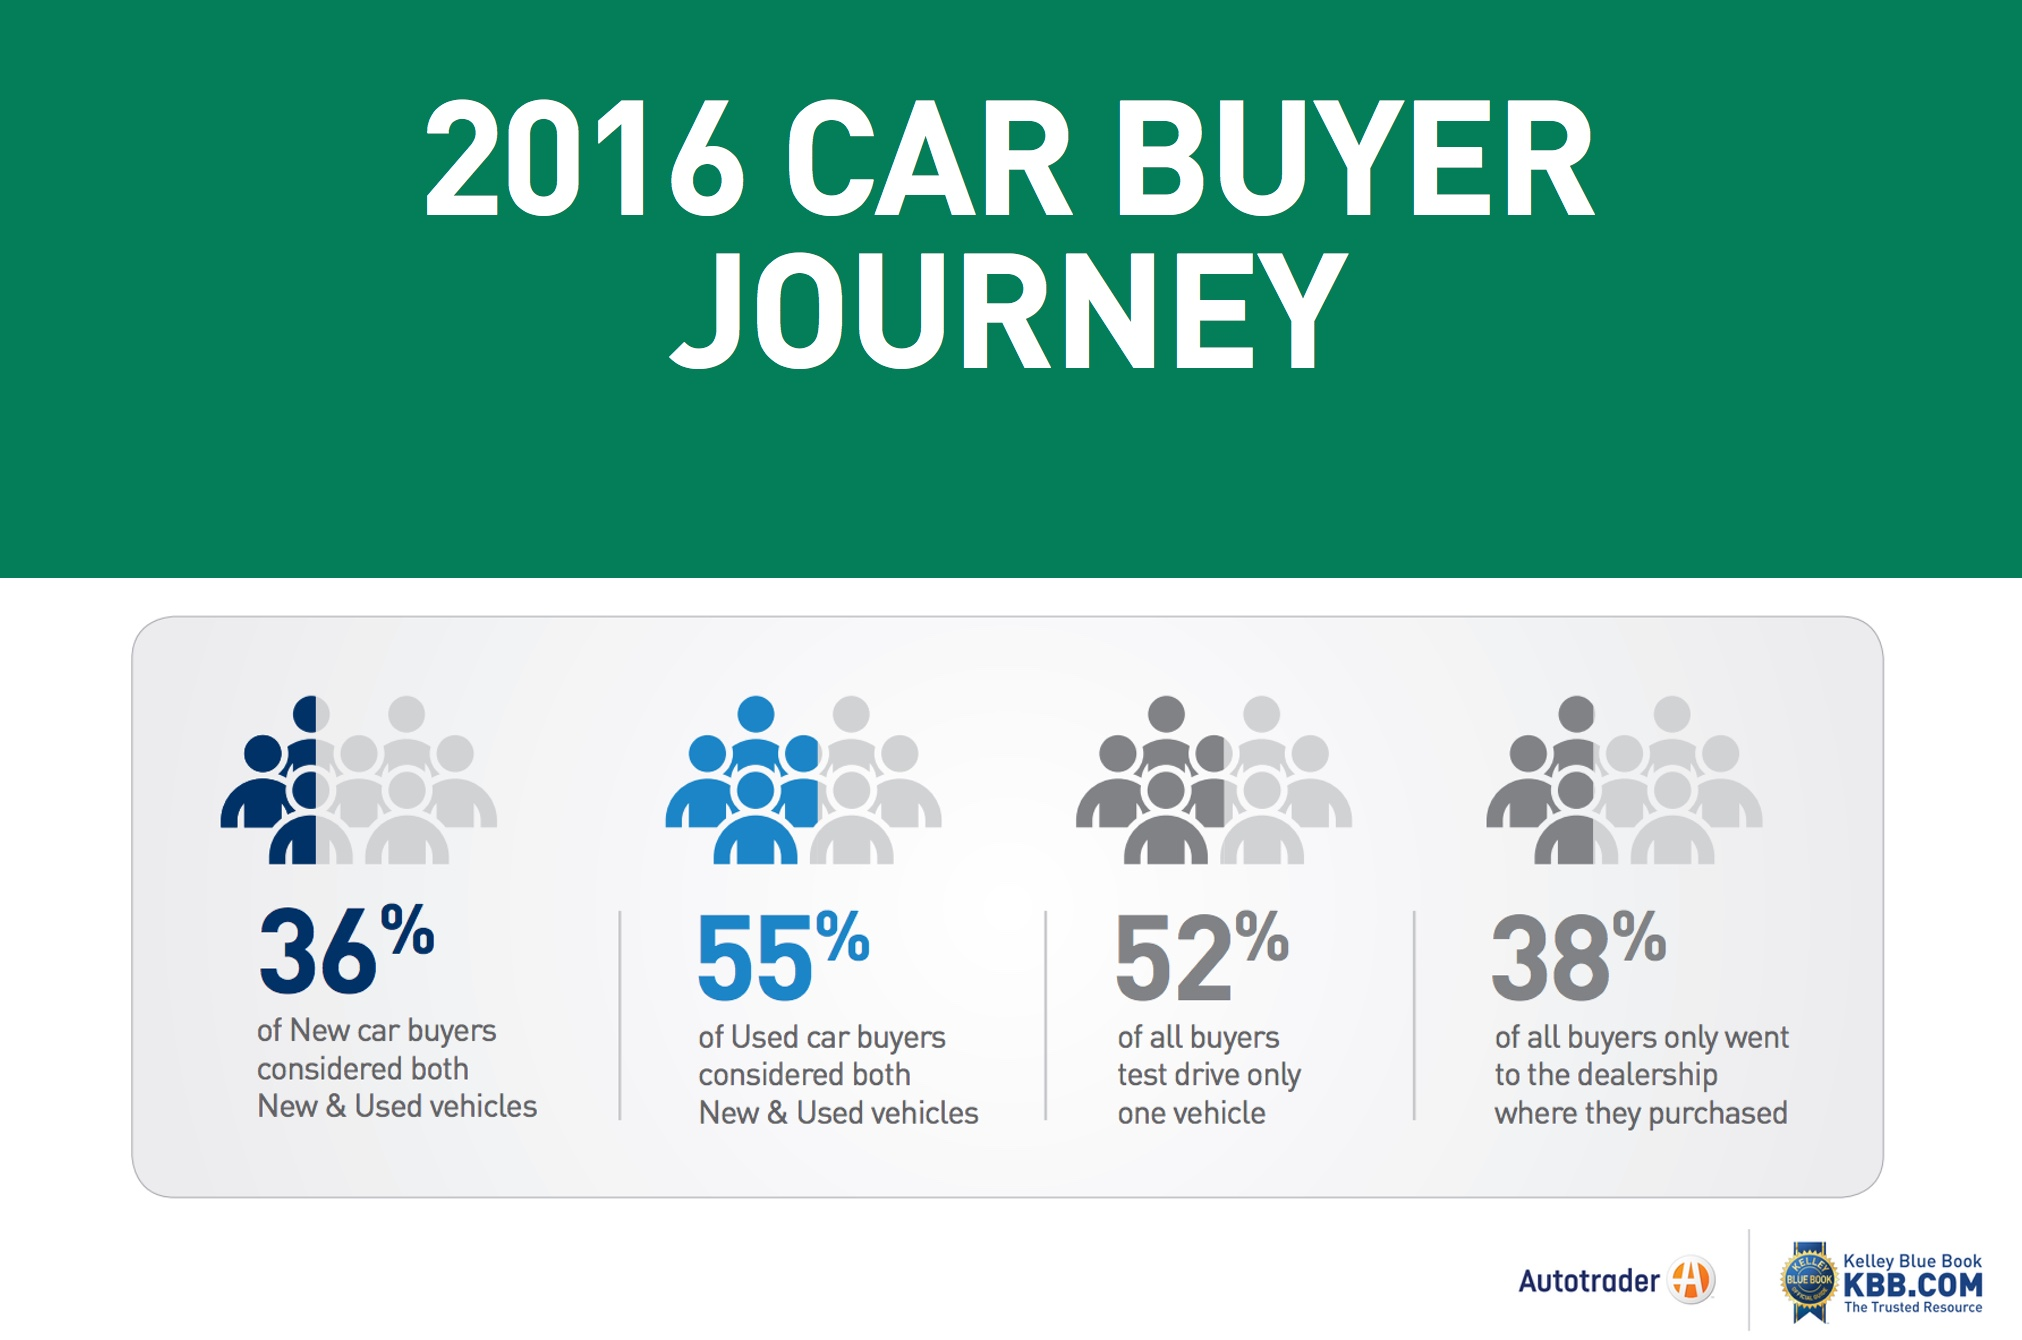 What Does the 2016 Car Buyer Journey Say?